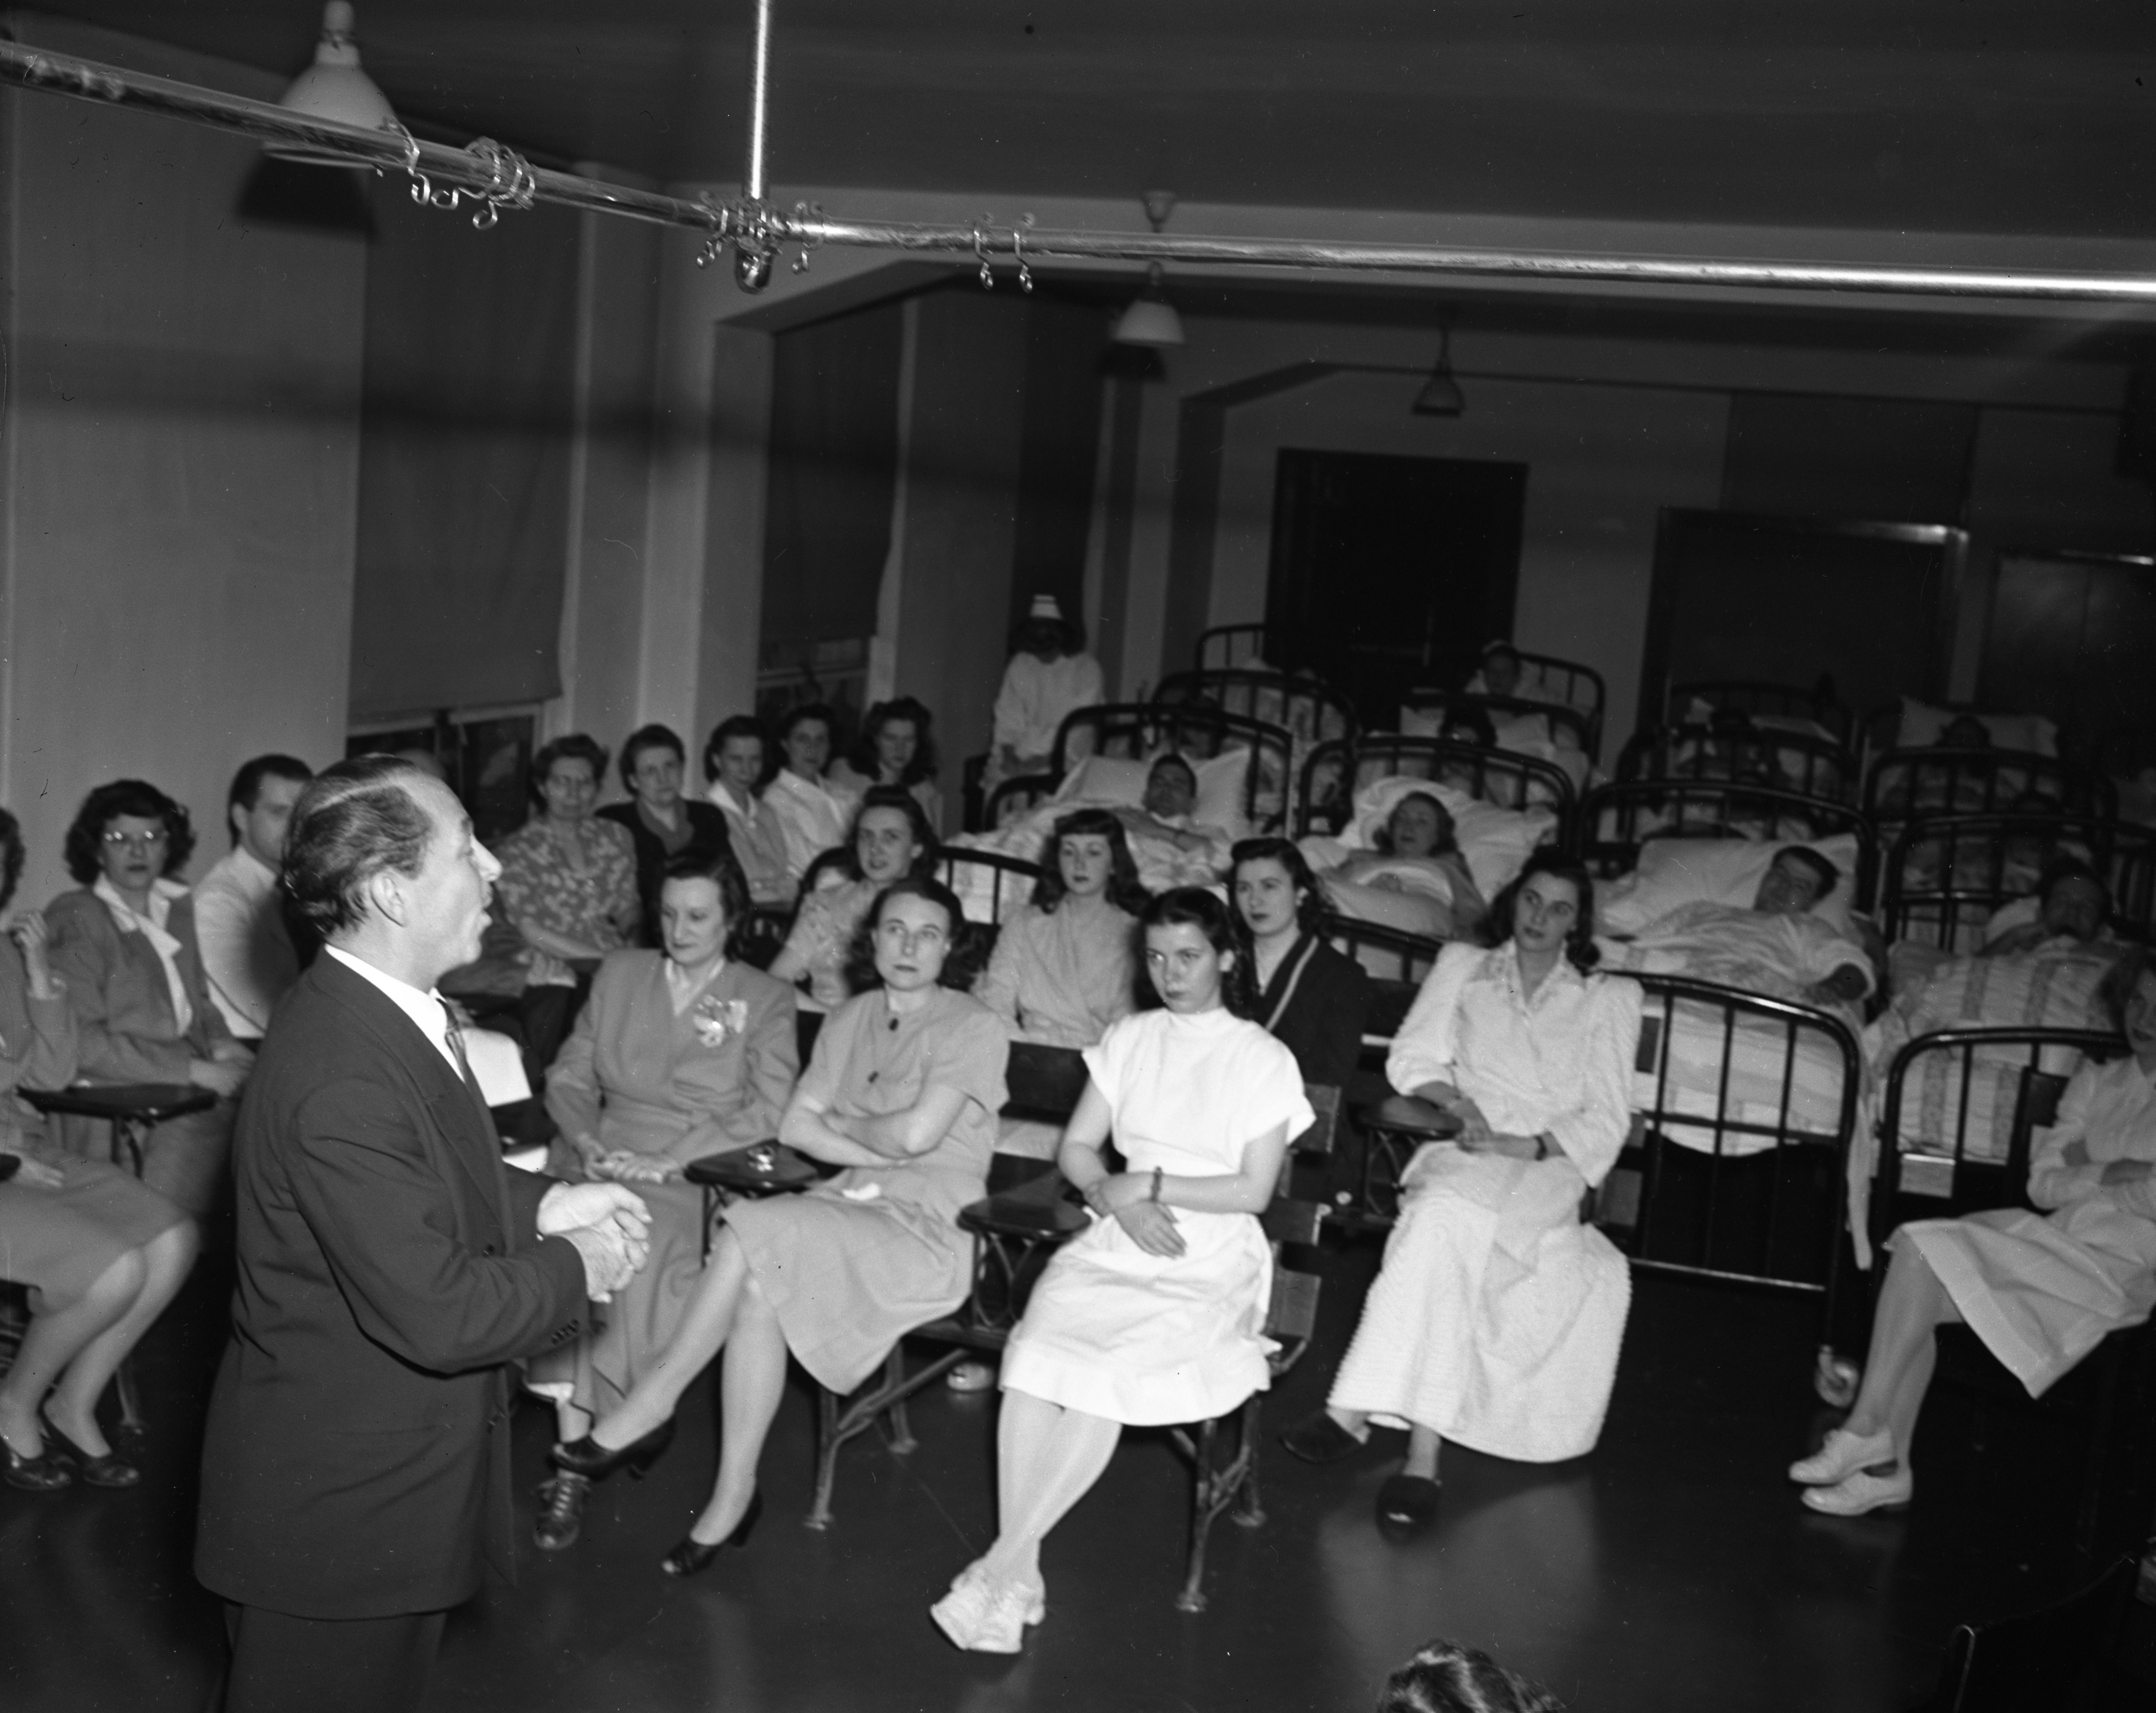 Fredrick Jagel, Metropolitan Opera Tenor, sings to University of Michigan TB patients, May 1947 image